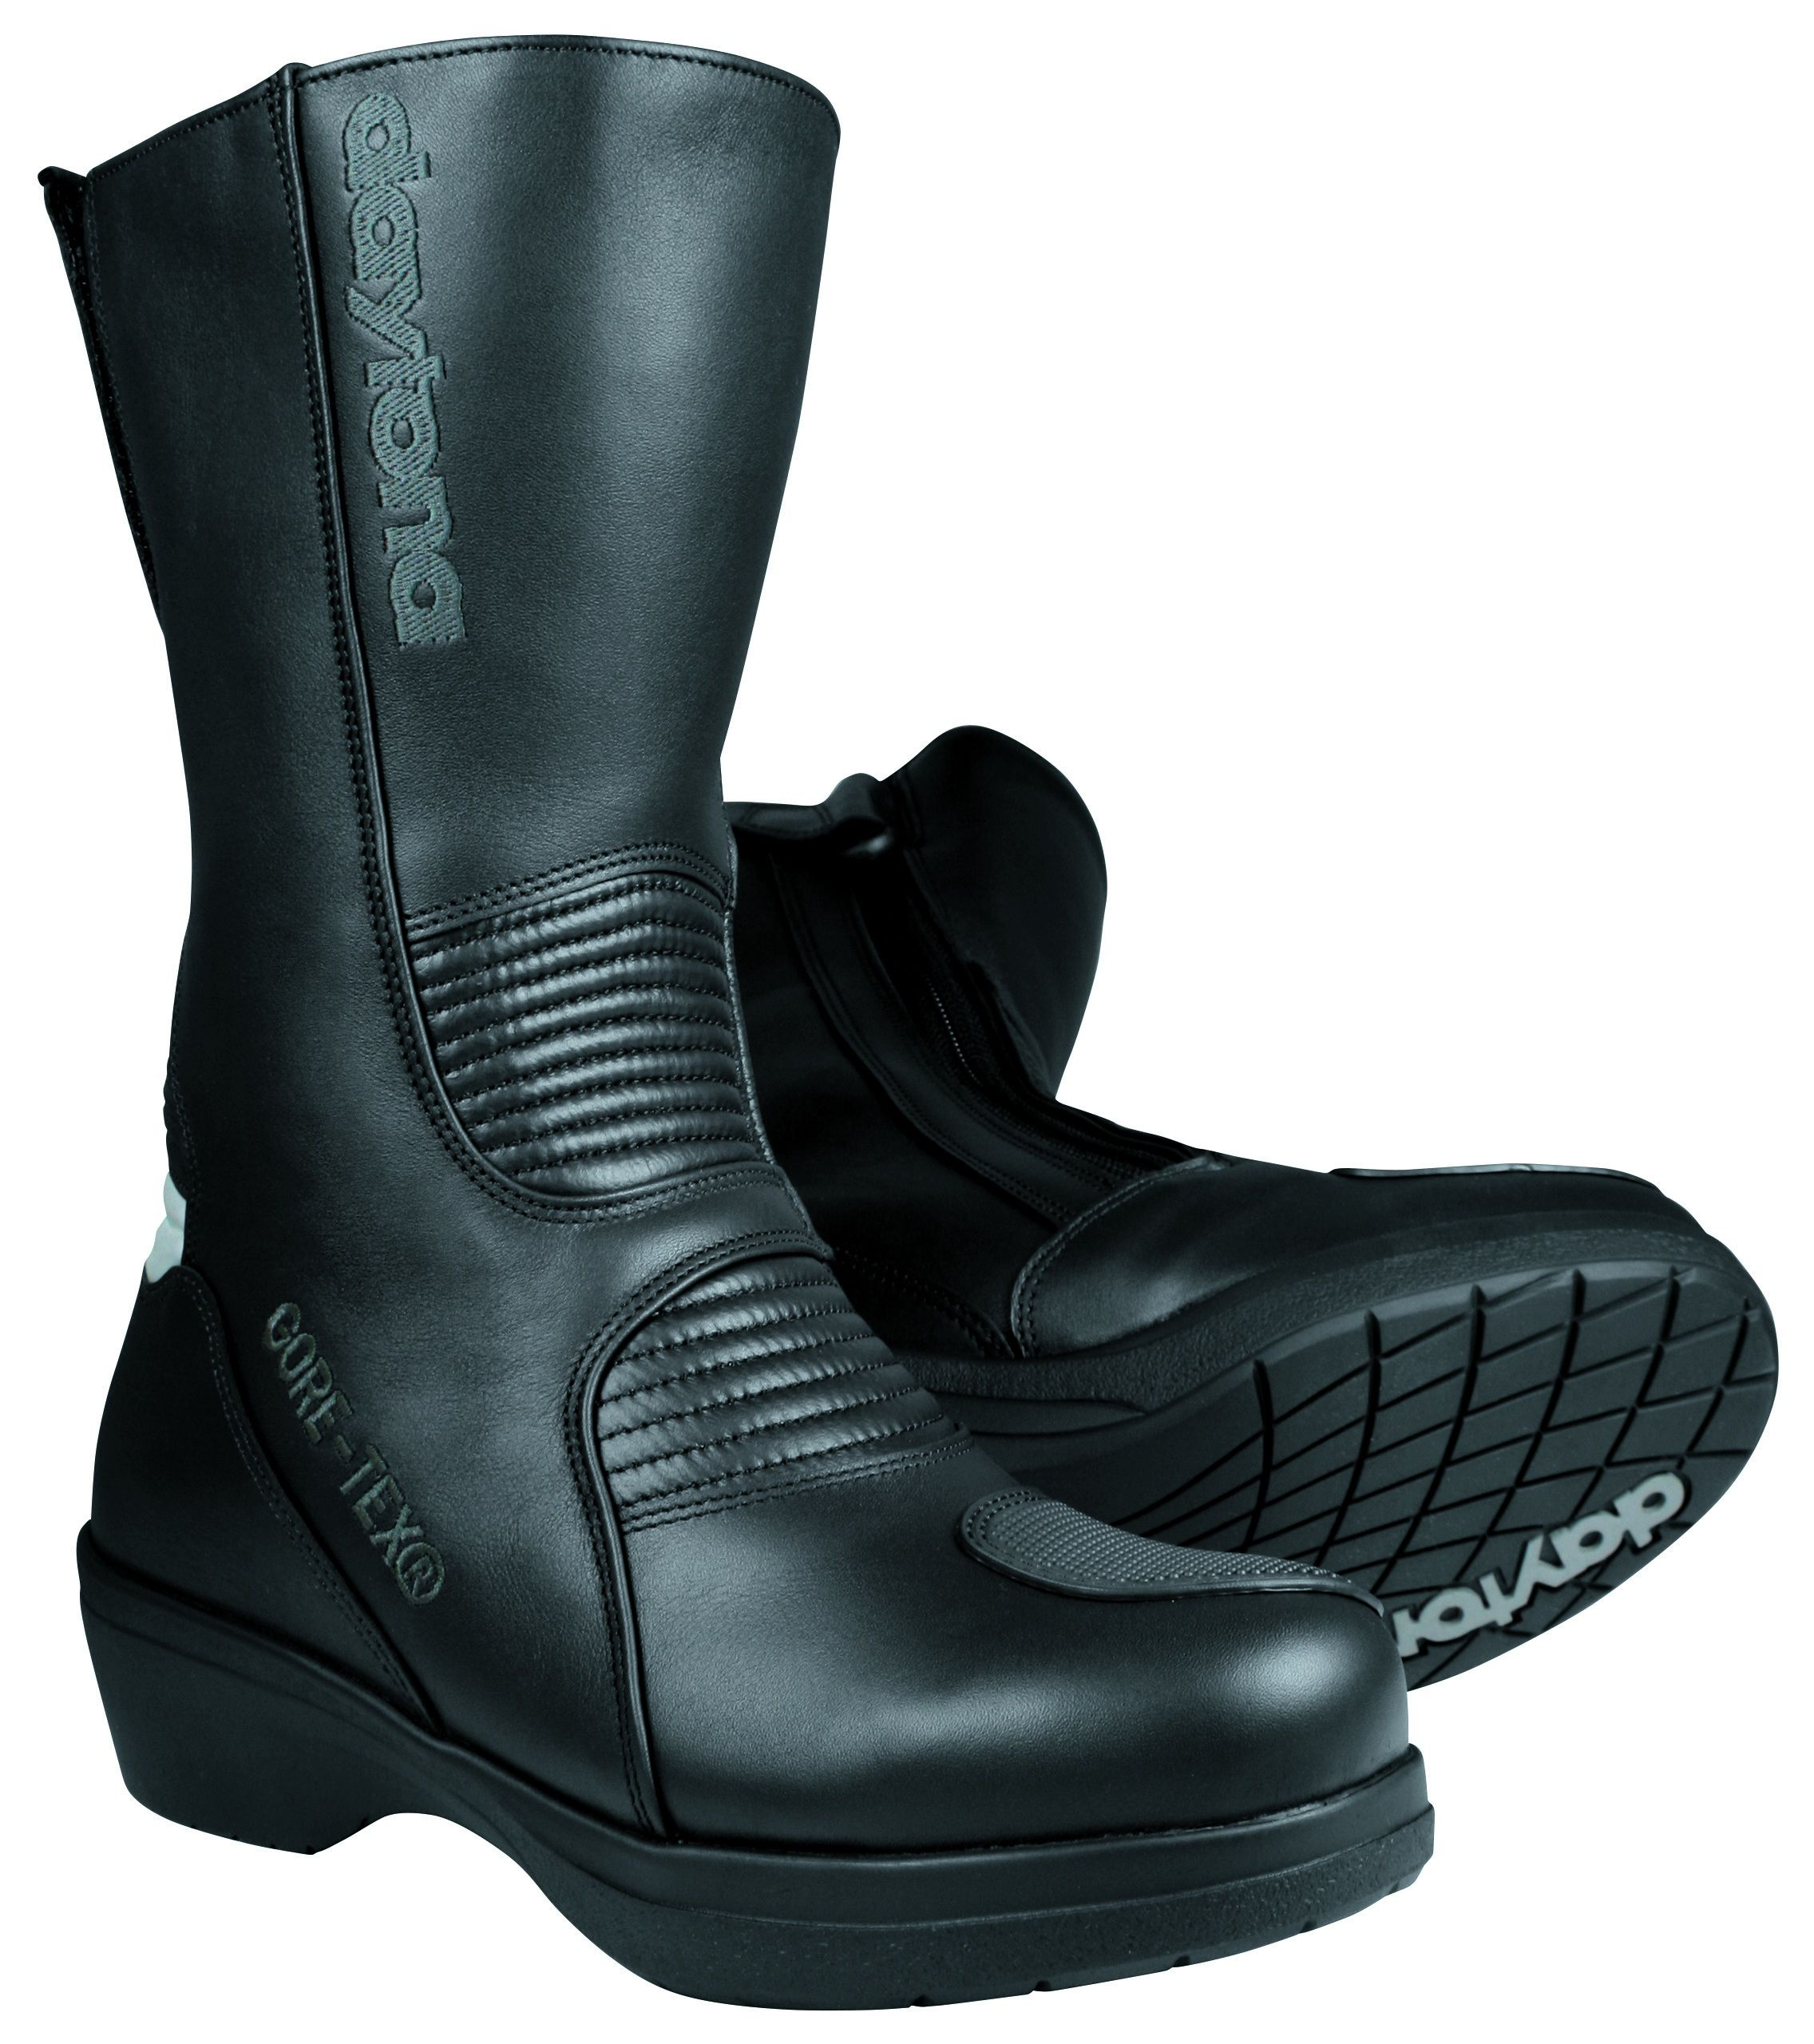 Buy Daytona Lady Pilot GTX Ladies Boots | Louis motorcycle